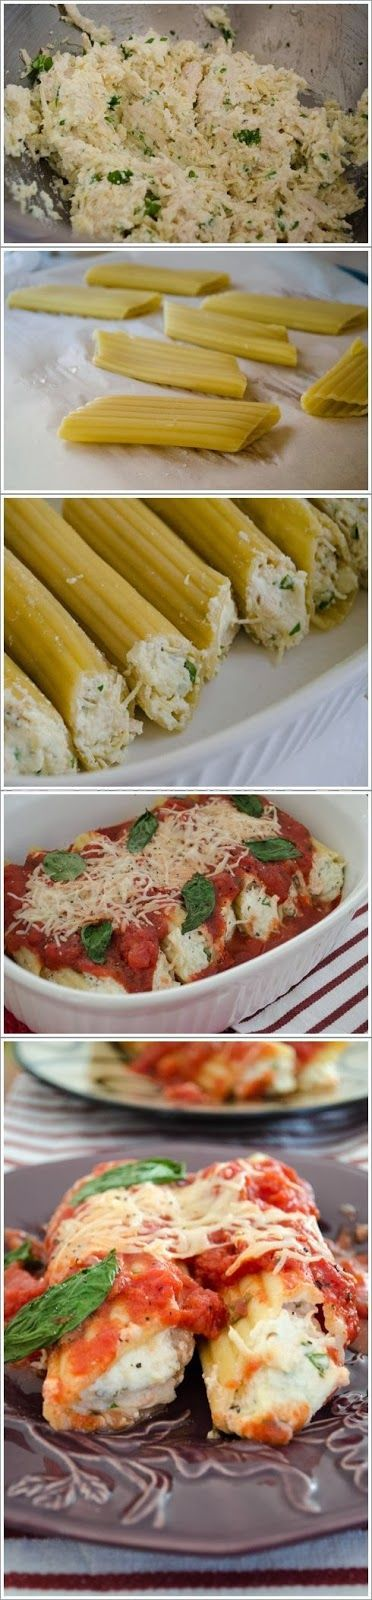 The Busy Bee: Parmesan Chicken Manicotti